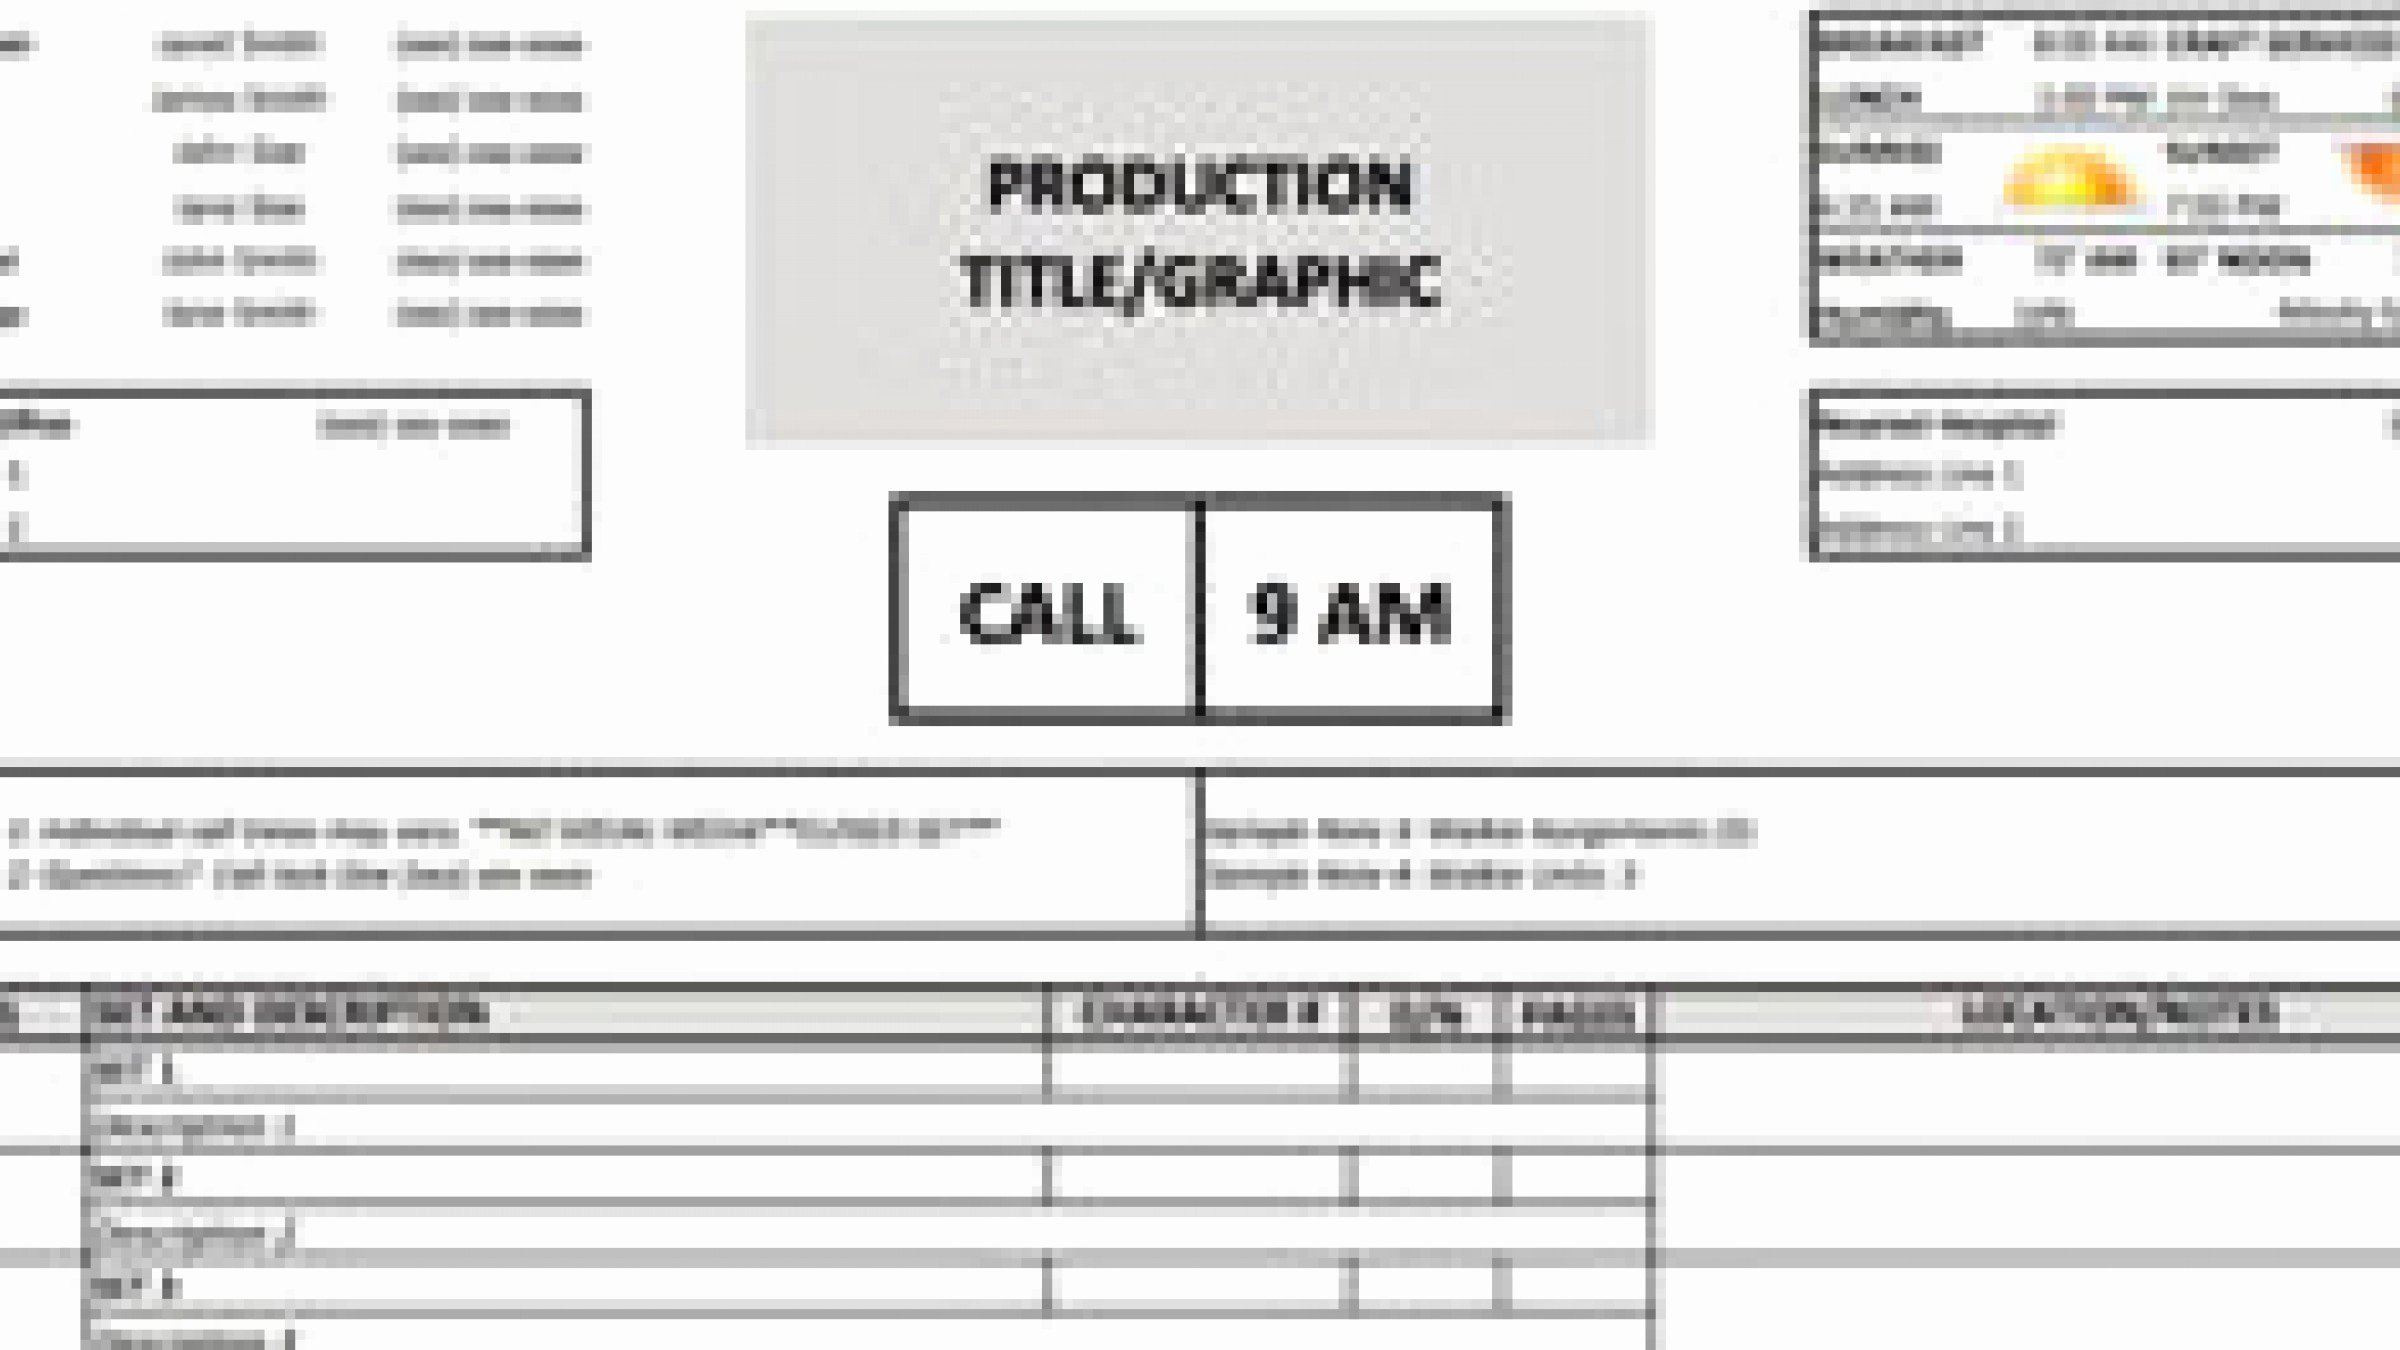 Call Sheet Samples Elegant Download A Free Call Sheet Template to Get Your Crew